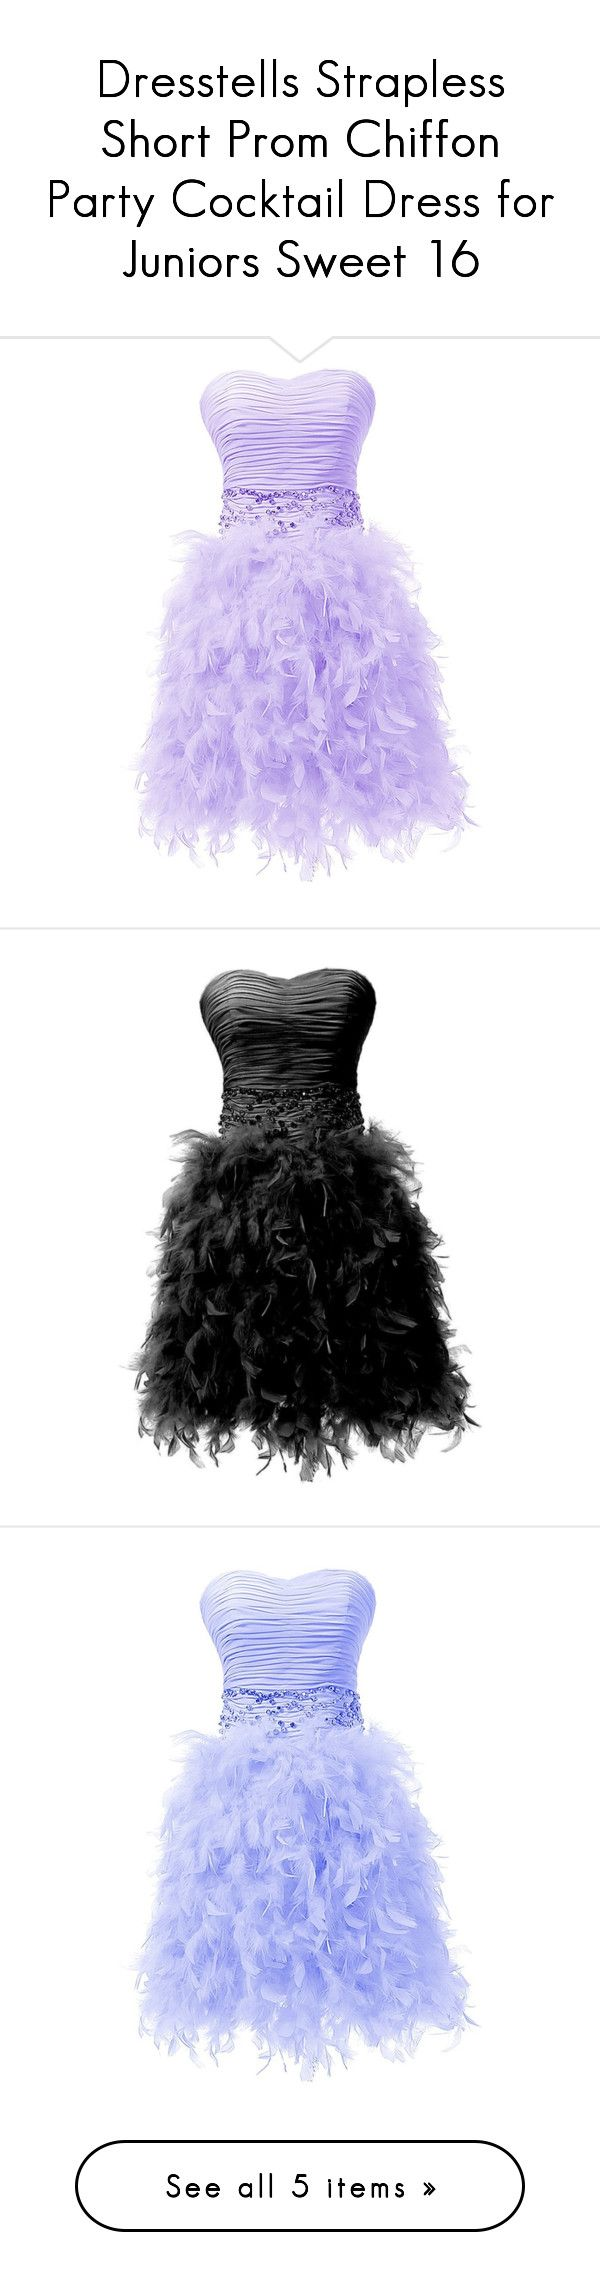 """Dresstells Strapless Short Prom Chiffon Party Cocktail Dress for Juniors Sweet 16"" by sweetie-hart ❤ liked on Polyvore featuring dresses, lullabies, purple, vestido, short dresses, purple dress, strapless prom dresses, purple chiffon dress, short party dresses and black"